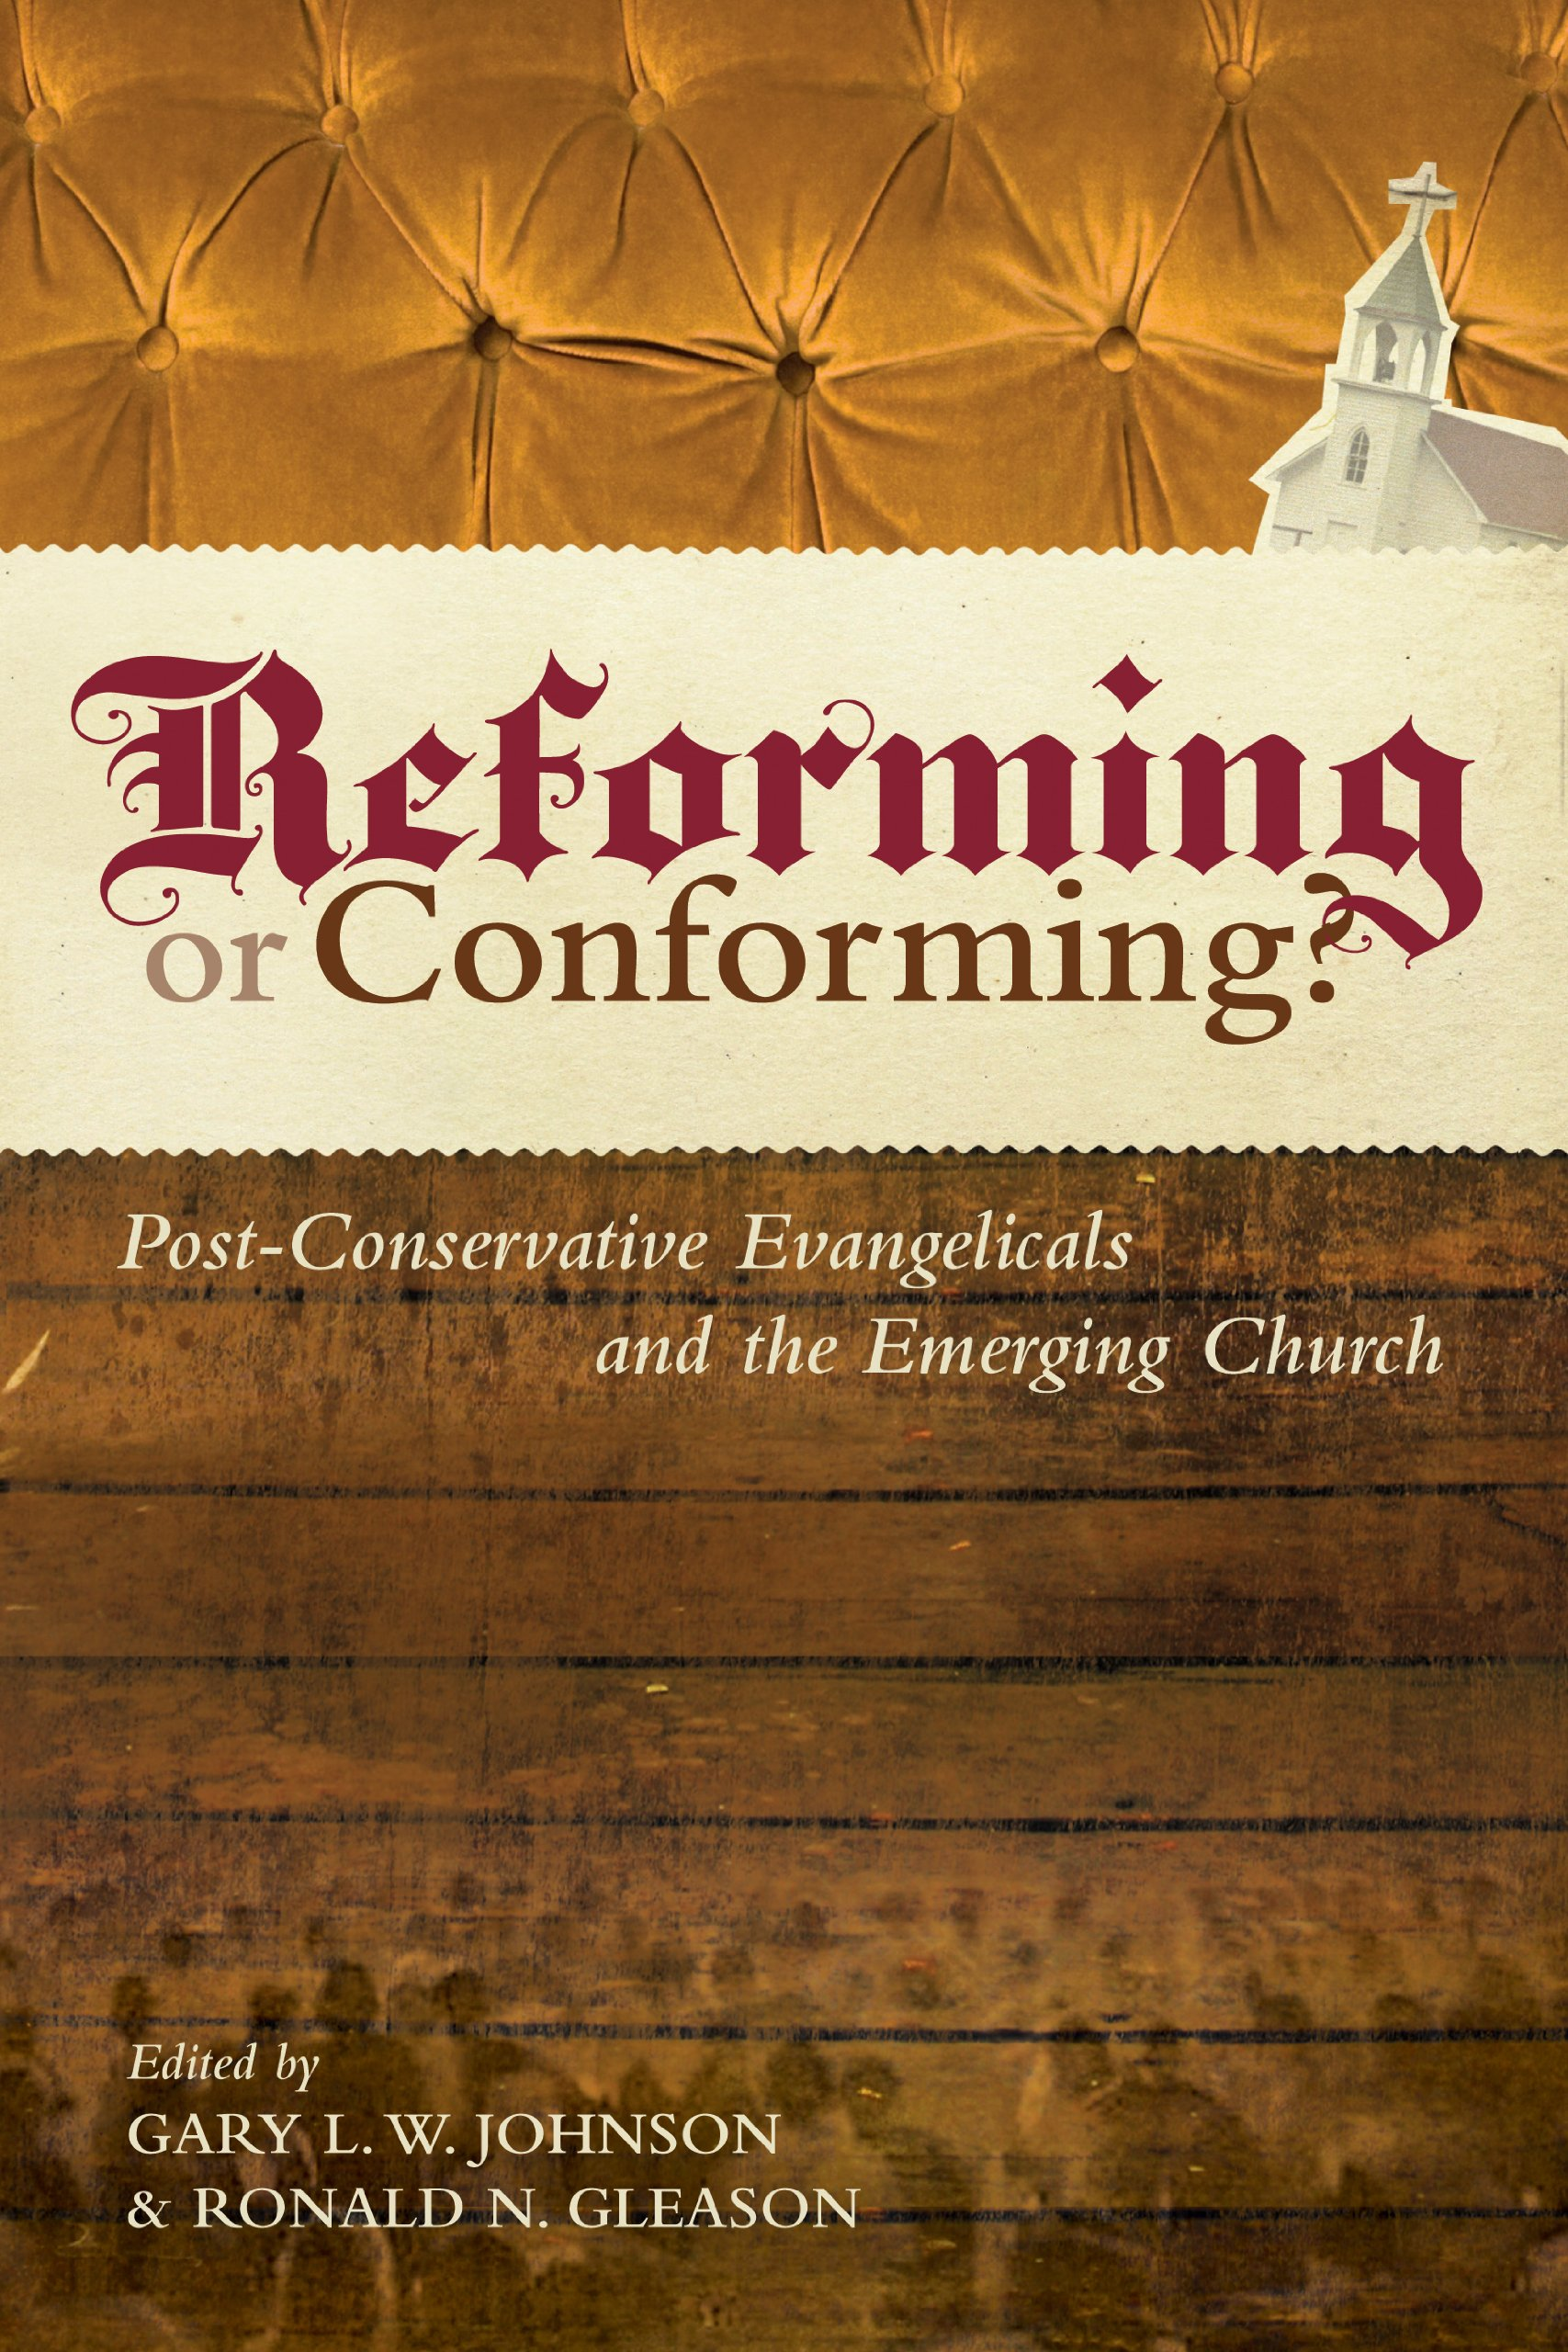 Reforming or conforming post conservative evangelicals and the emerging church gary l w johnson ronald n gleason david f wells paul wells